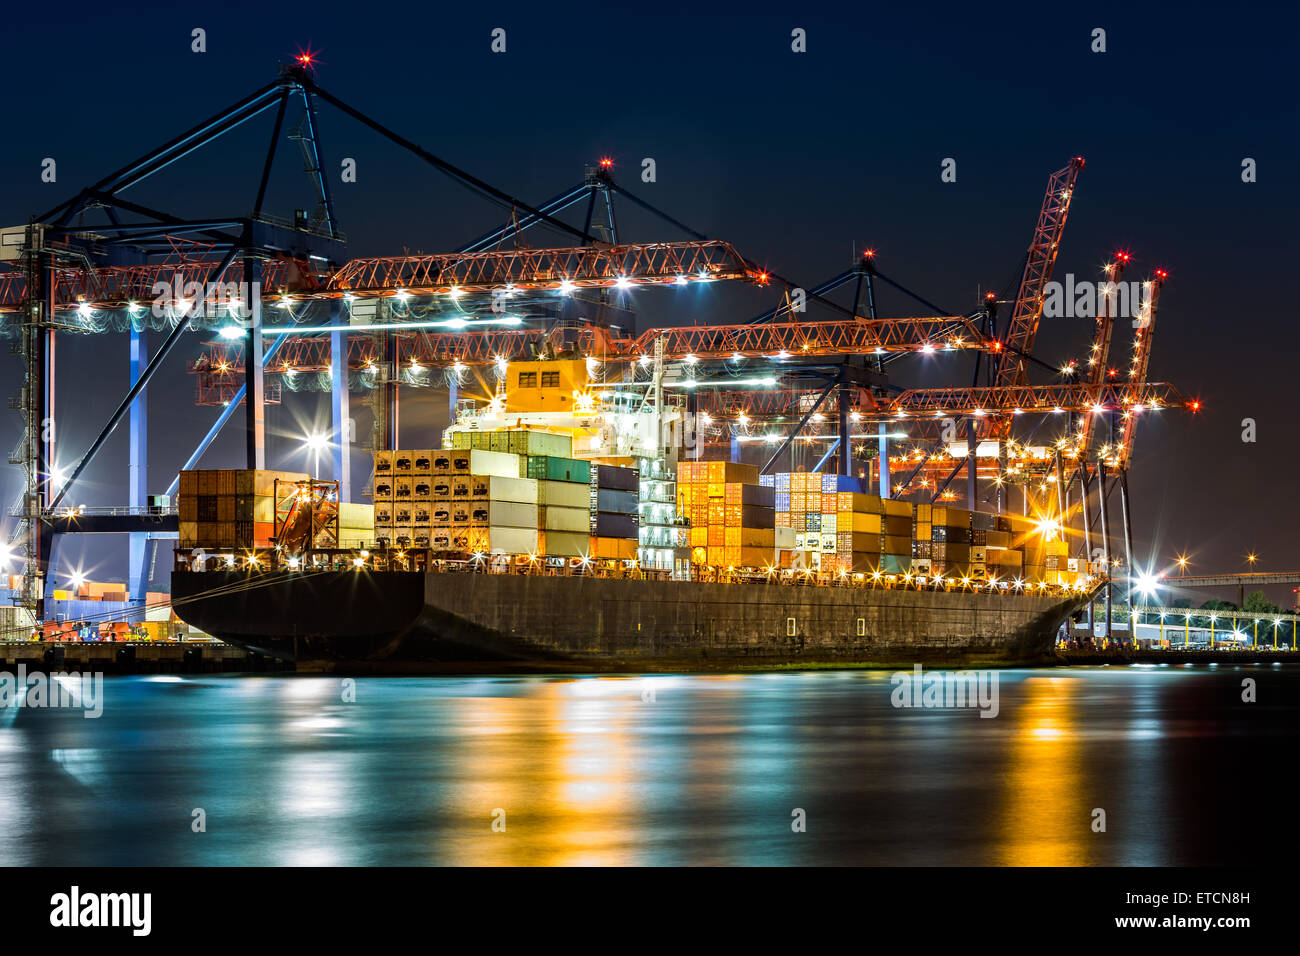 Cargo ship loaded in New York container terminal at night viewed from Elizabeth NJ across Elizabethport reach. - Stock Image